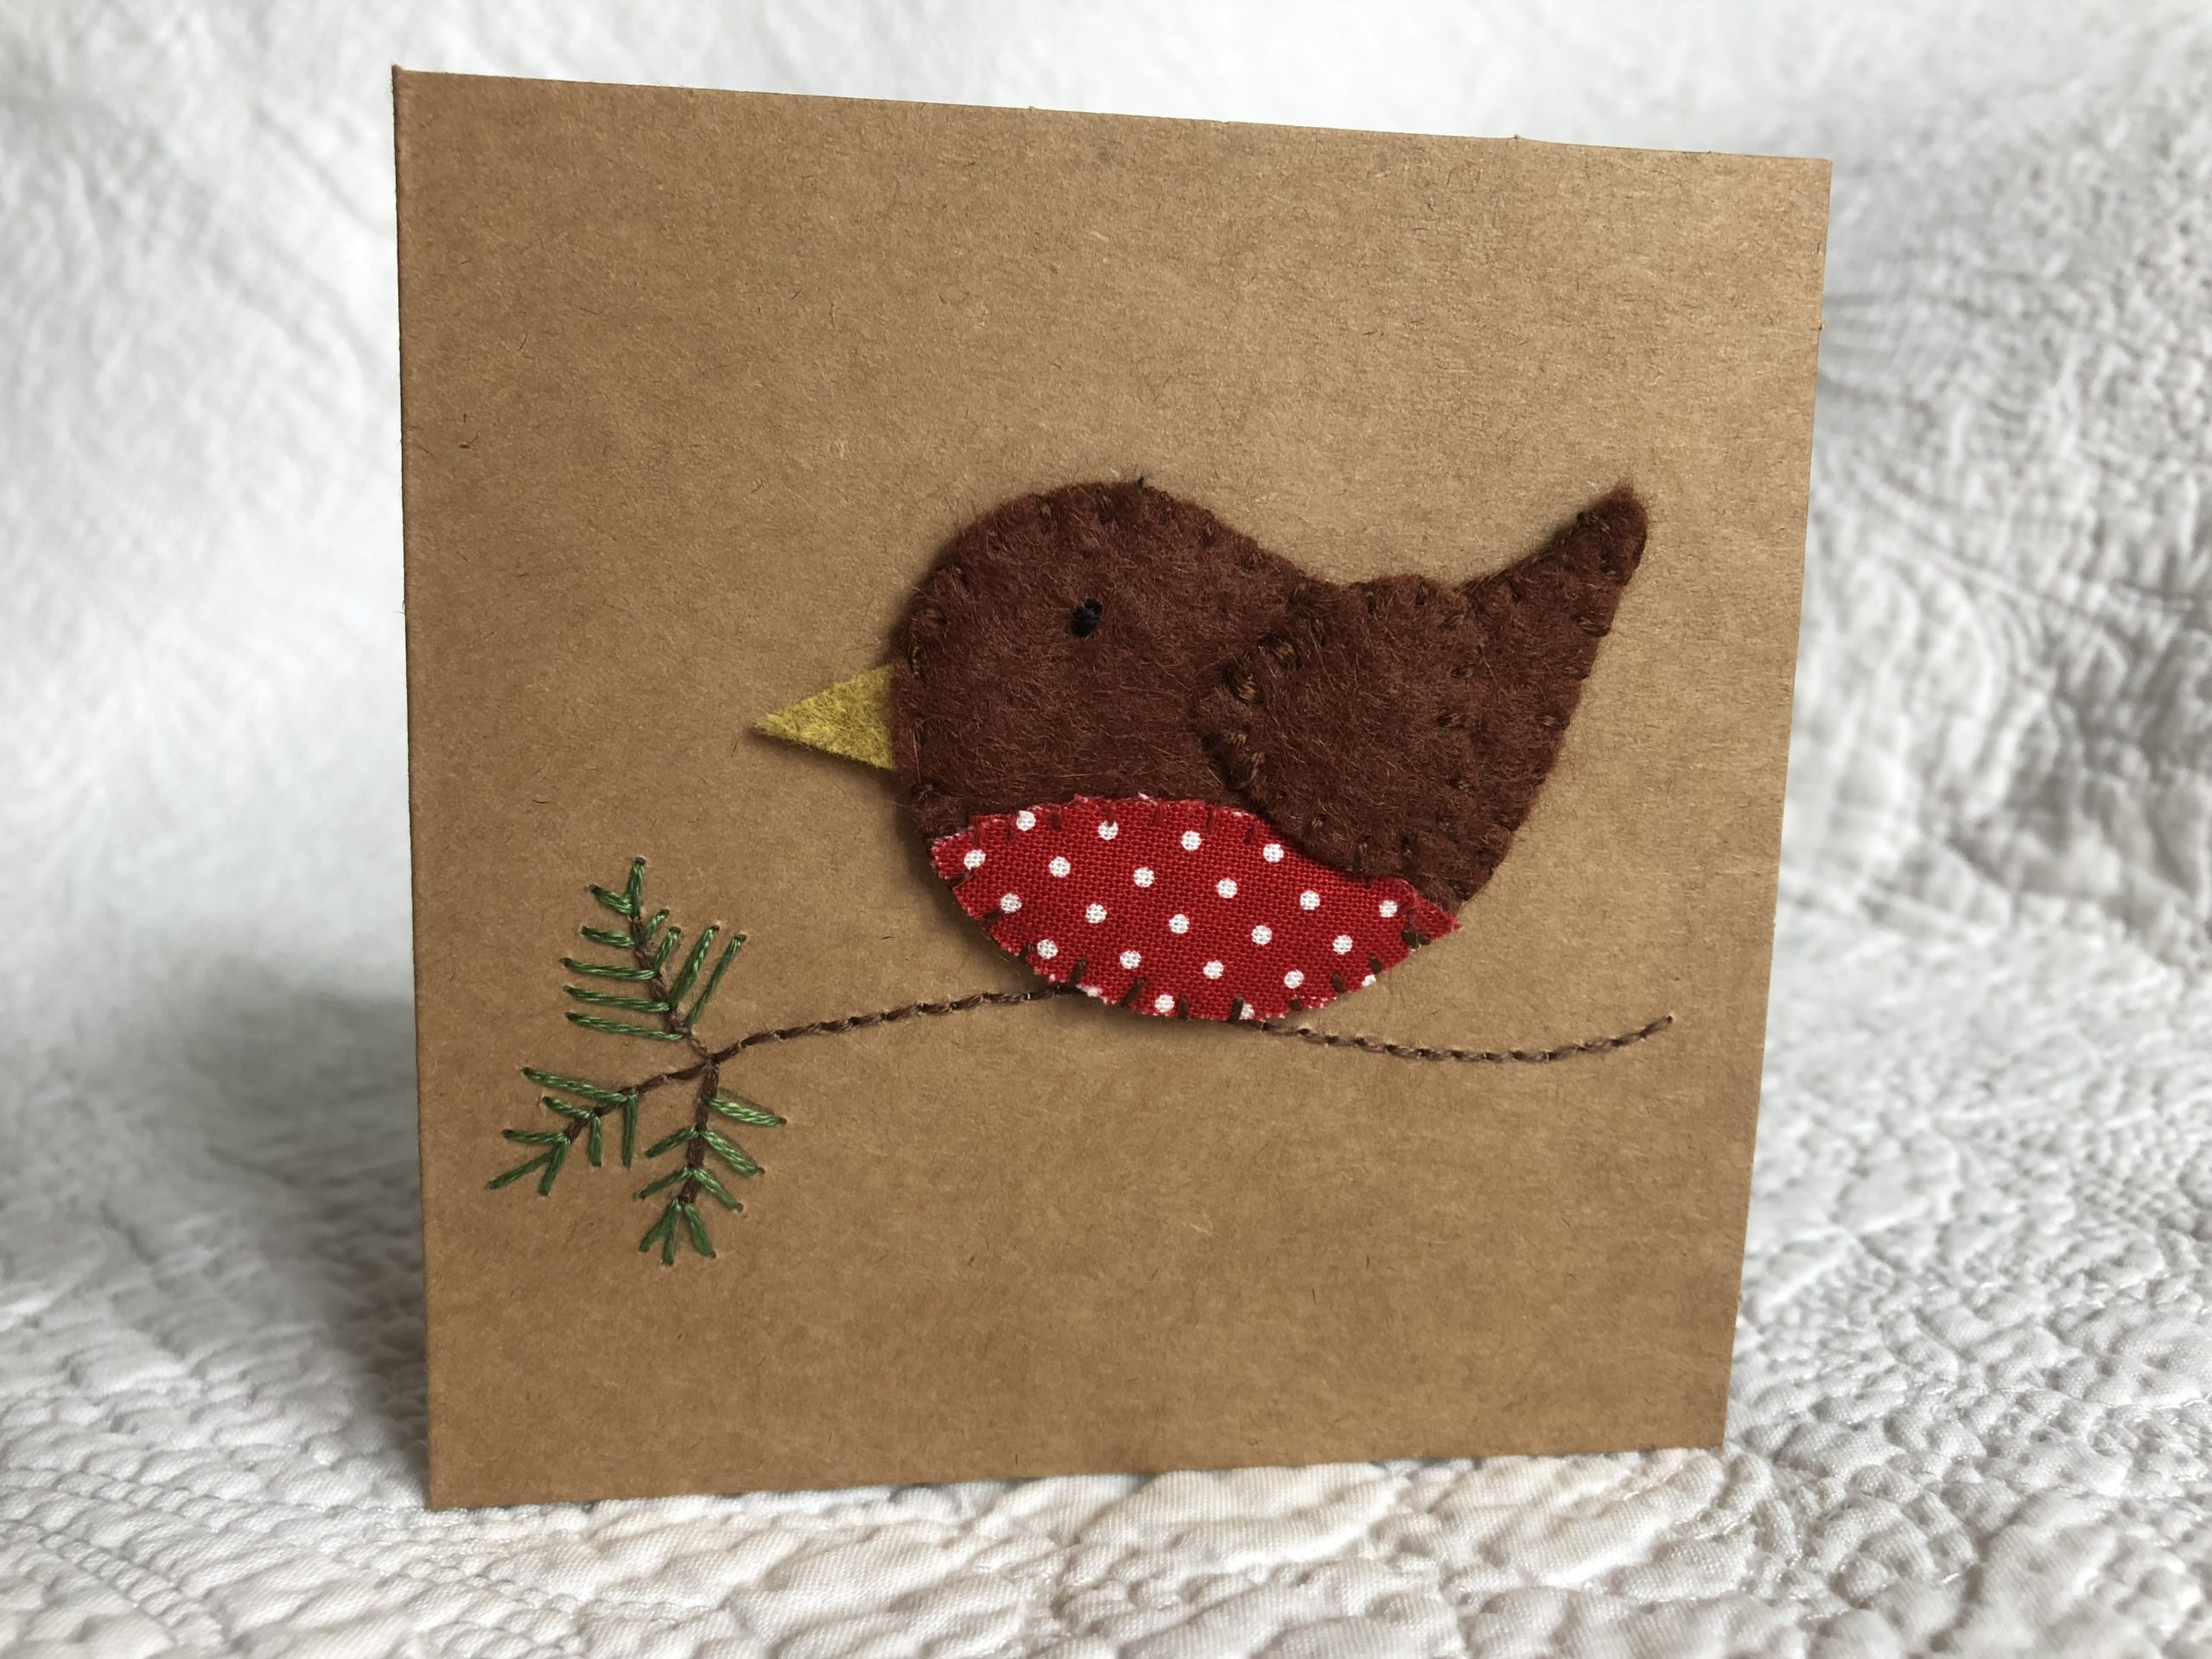 Little Robin greetings card.